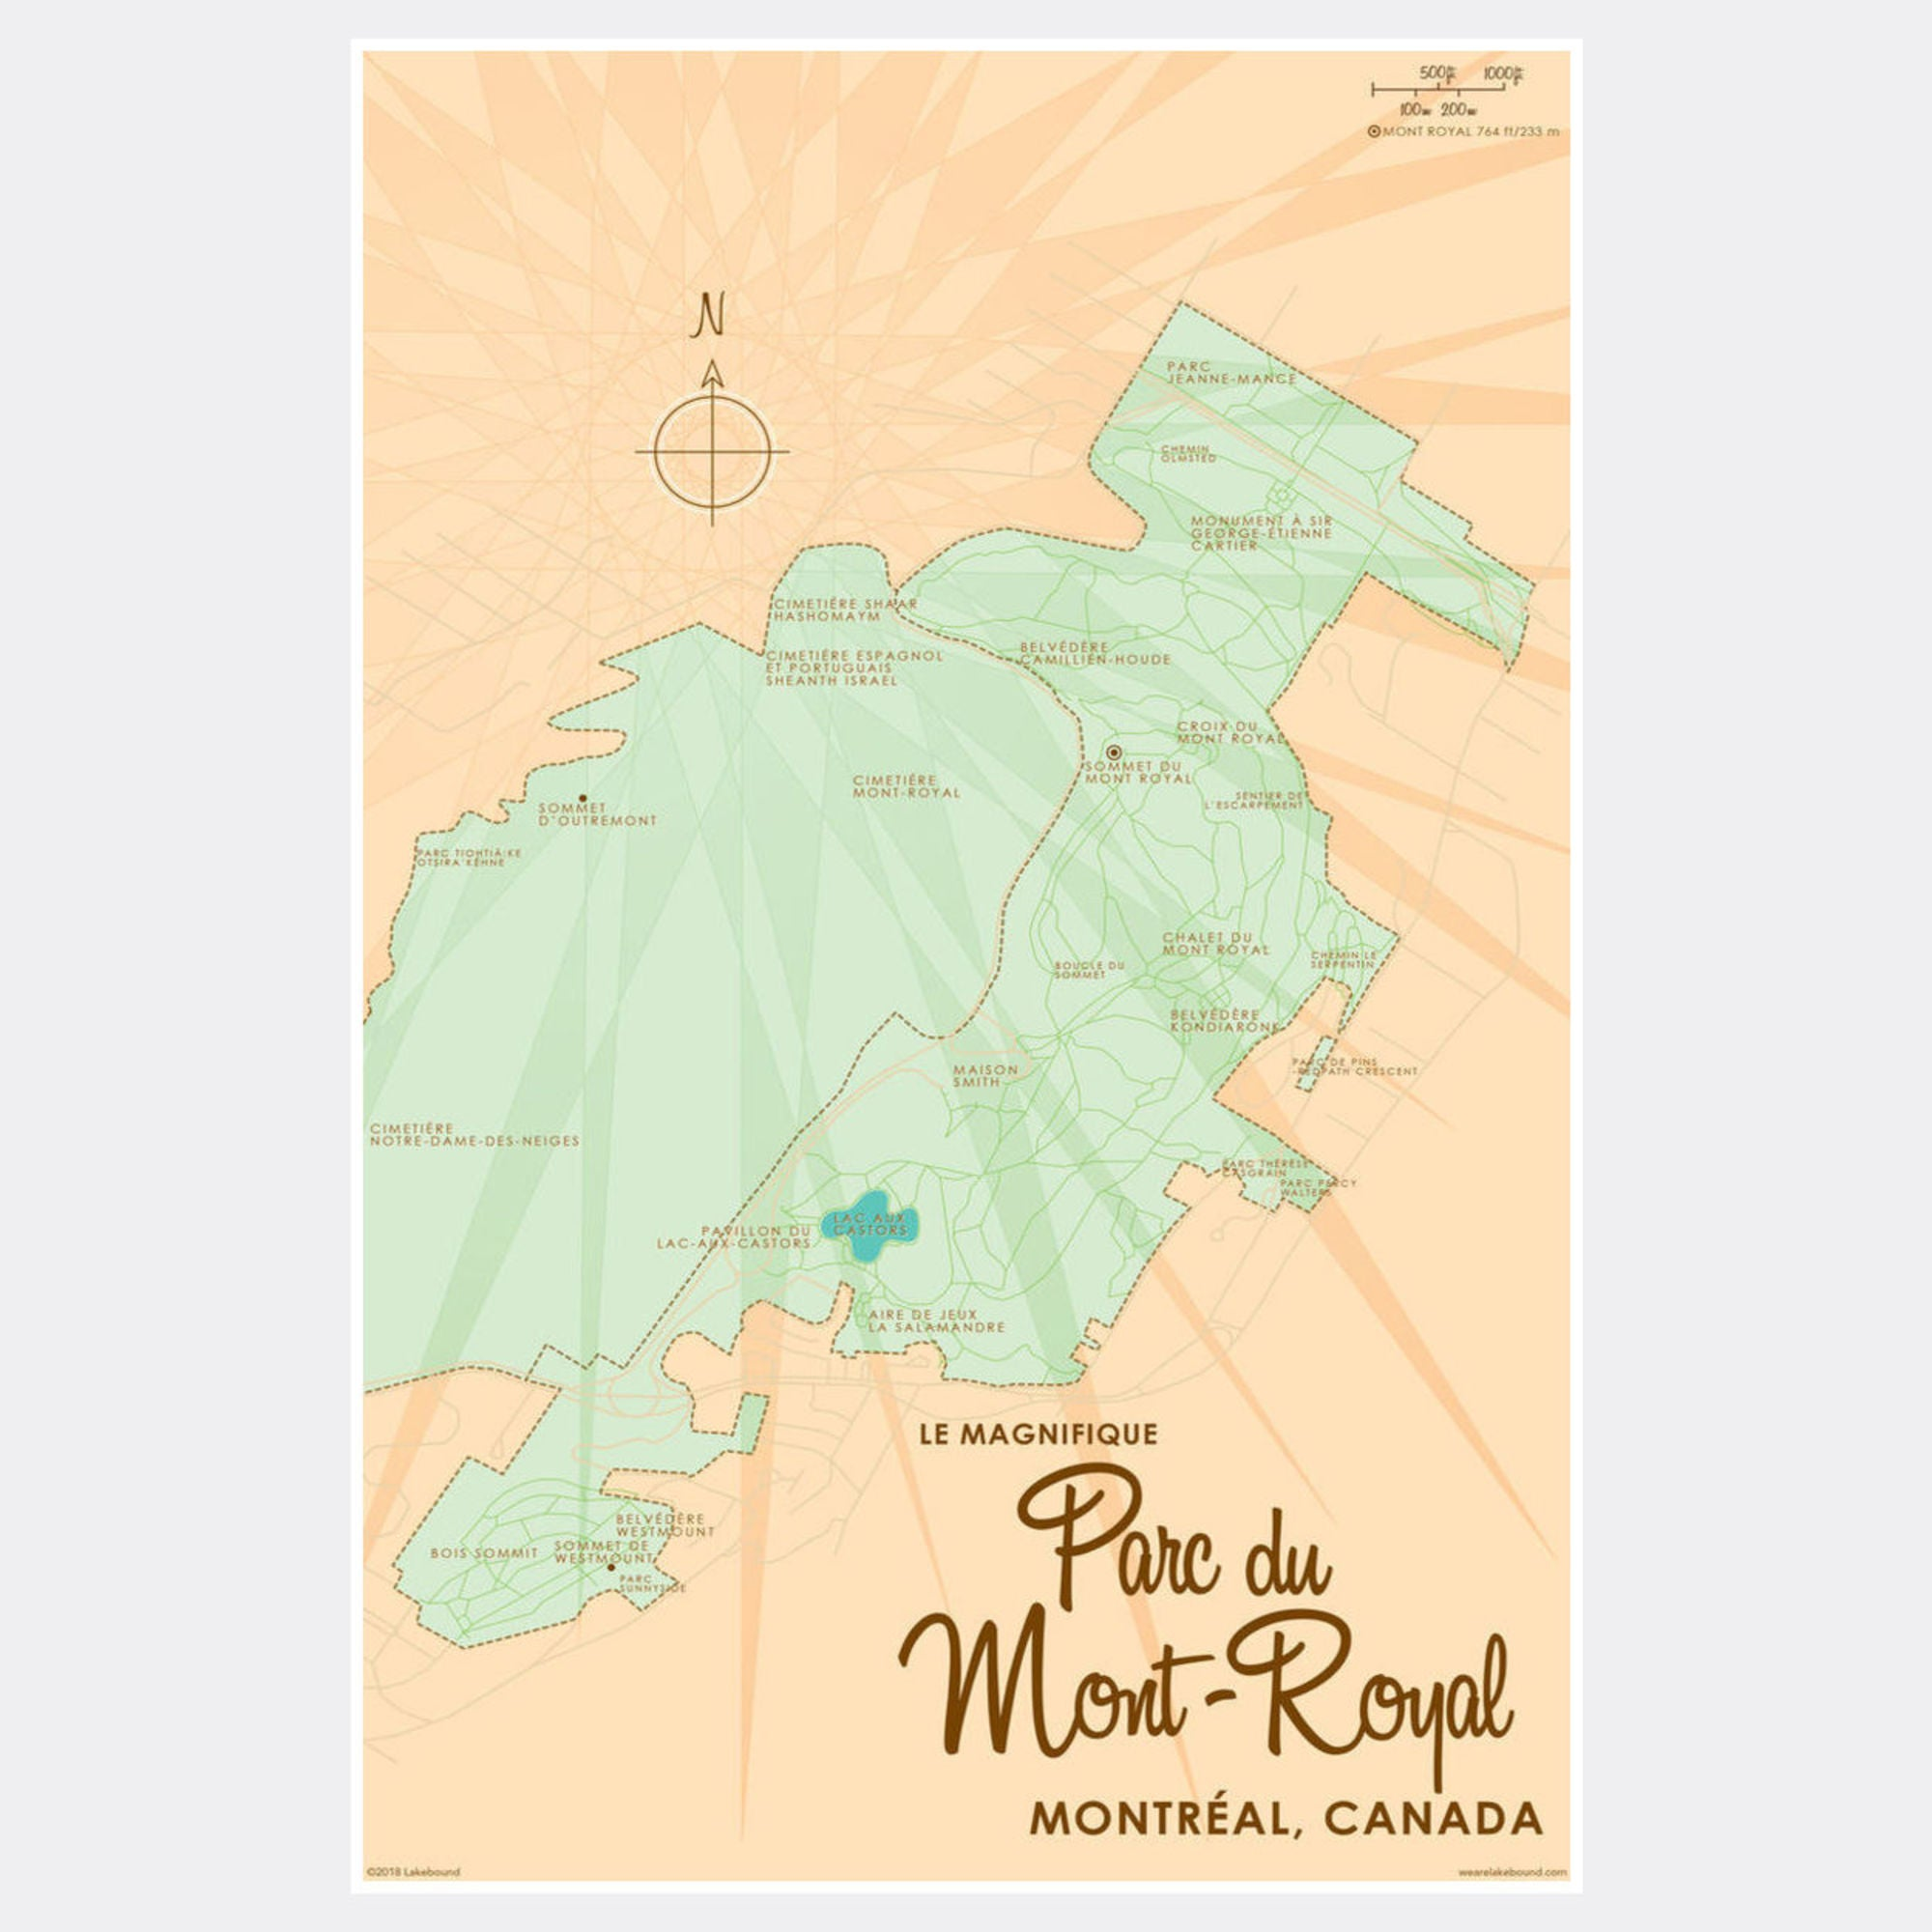 image about Printable Map of Montreal known as Parc du Mont-Royal Montreal Canada, Paper Print